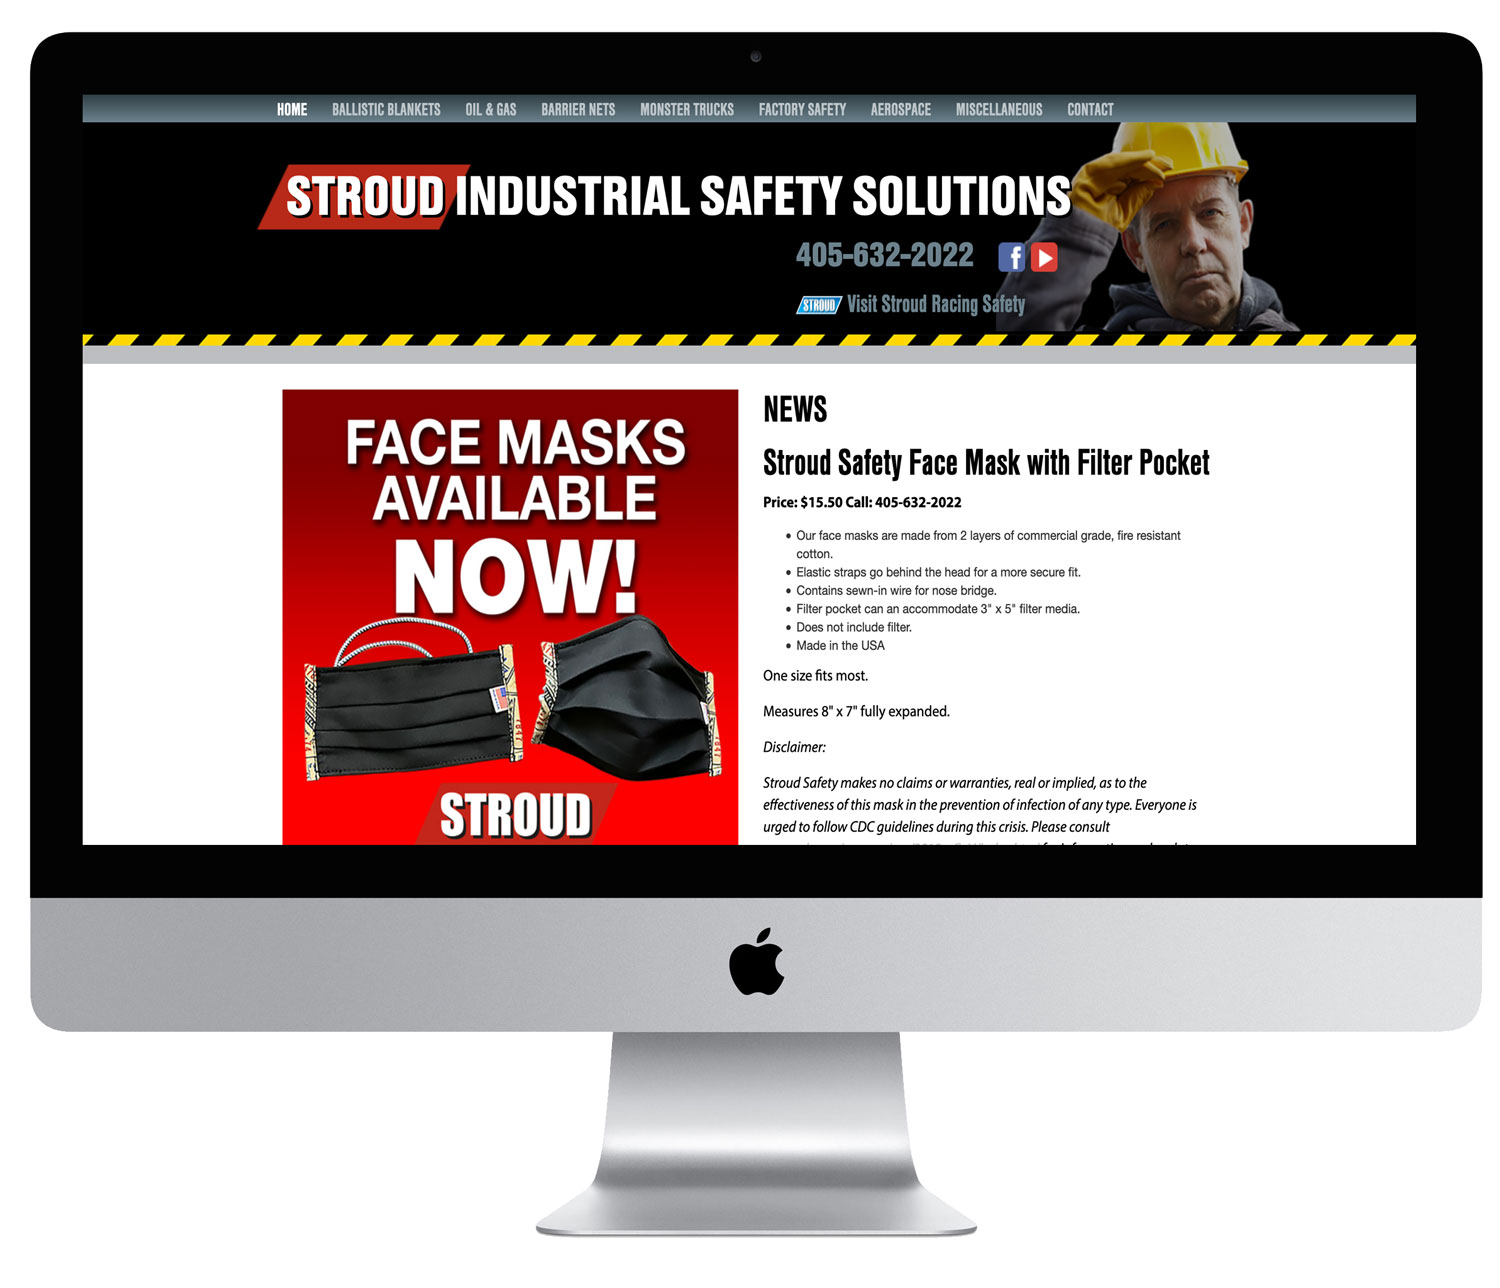 Stroud Industrial Safety Solutions website